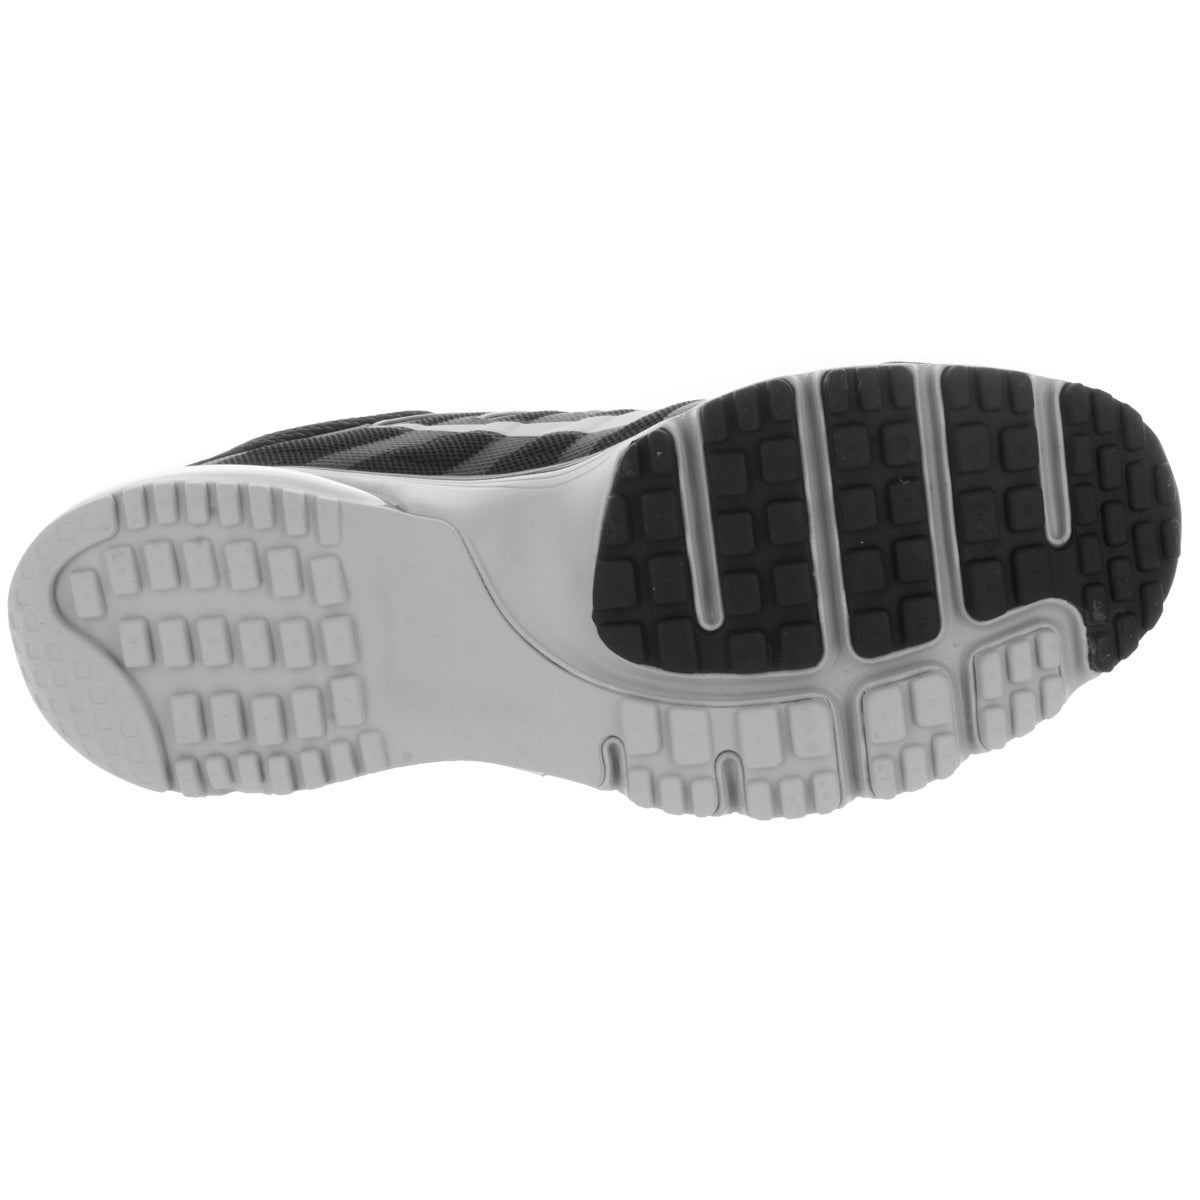 buy online 9db6a 2dce2 Shop Nike Men s Air Max Excellerate 4 Black White Dark Grey Running Shoe -  Free Shipping Today - Overstock - 12117827